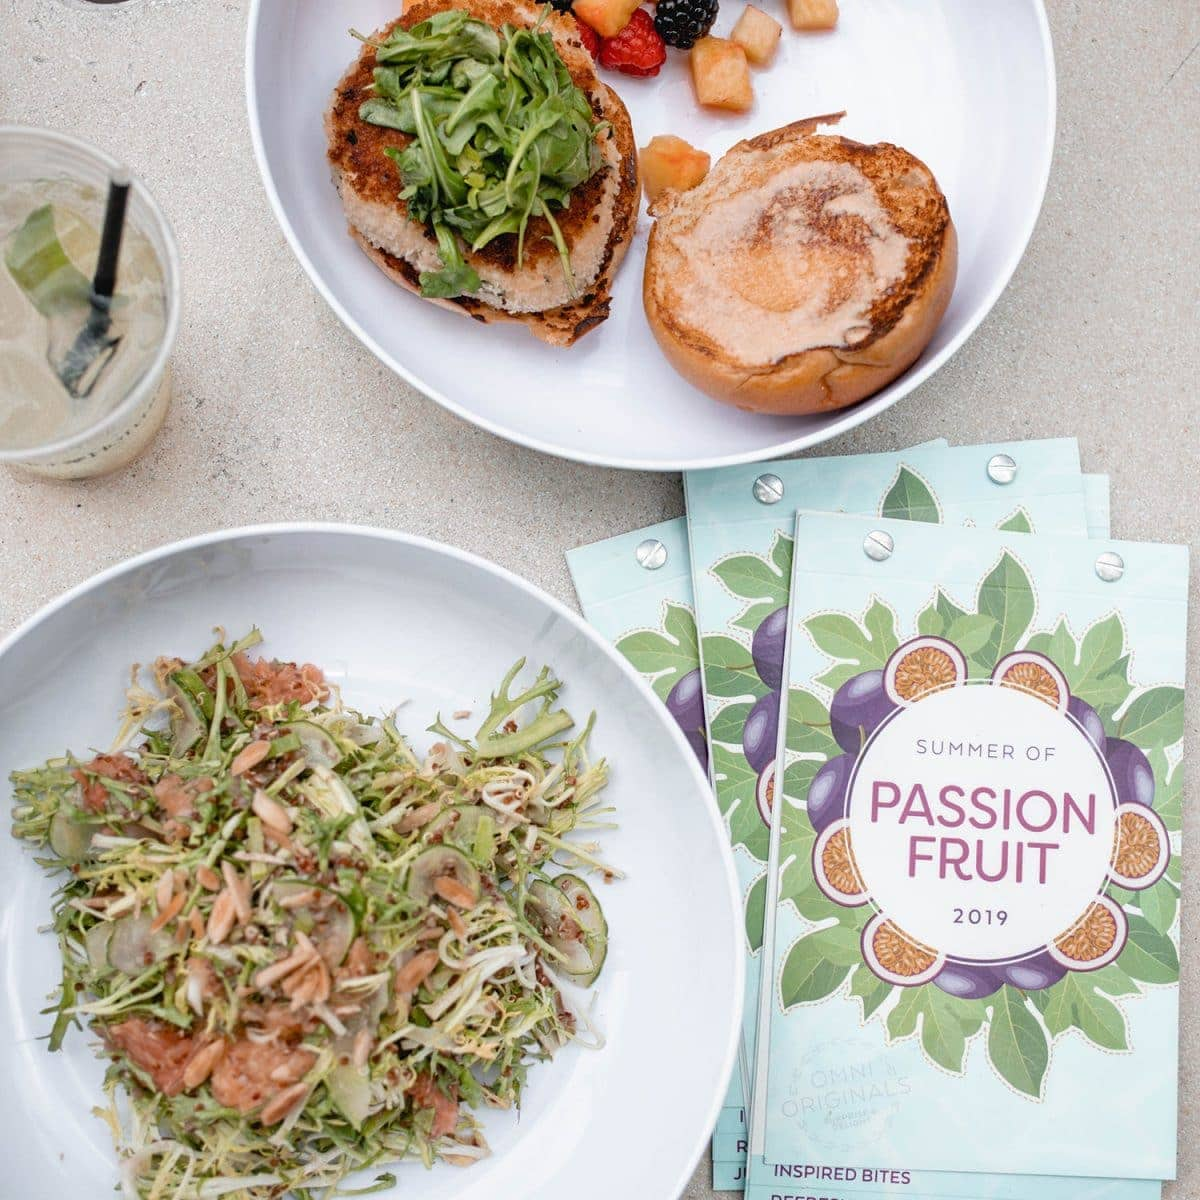 Houston blogger Meg O. on the Go shares her staycation at the Omni Houston Hotel - Summer of Passion Fruit menu